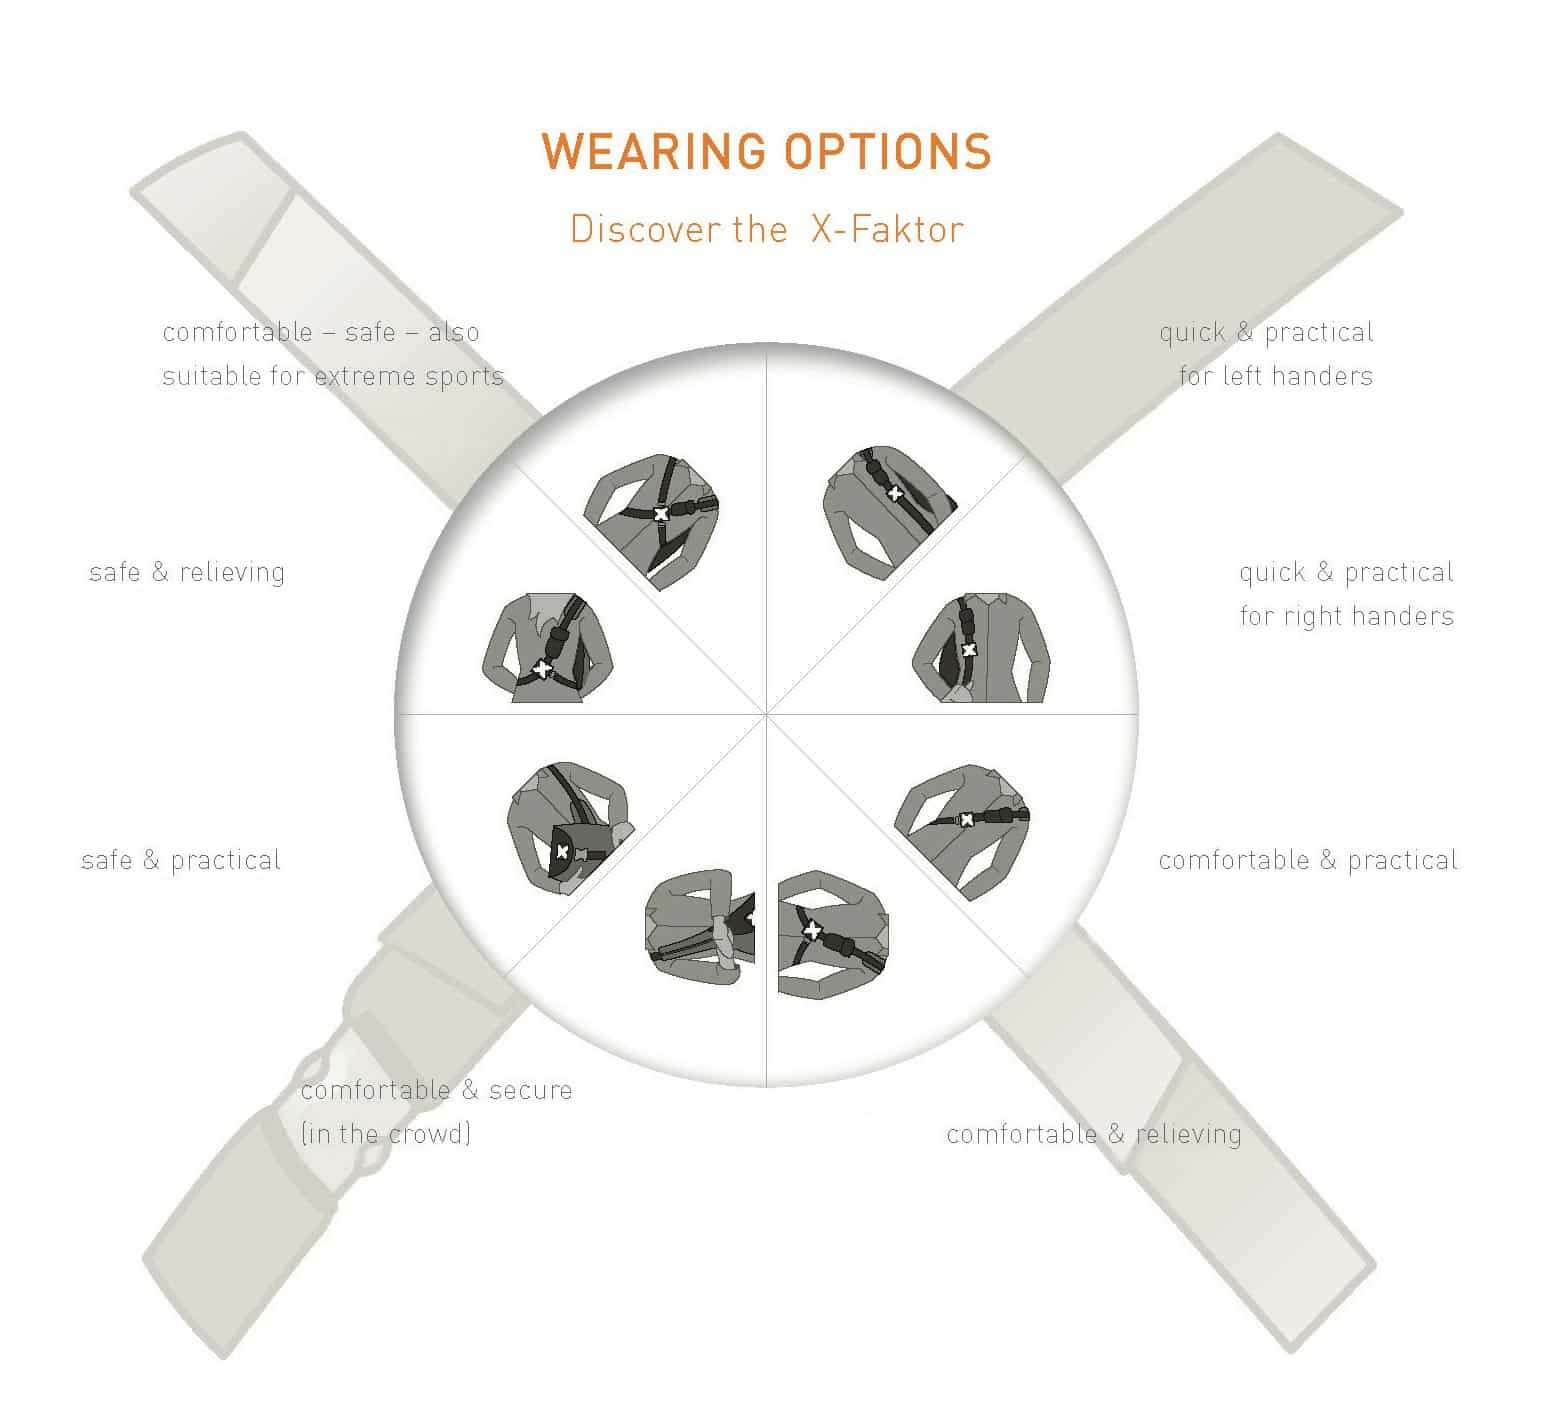 X-over carrying options